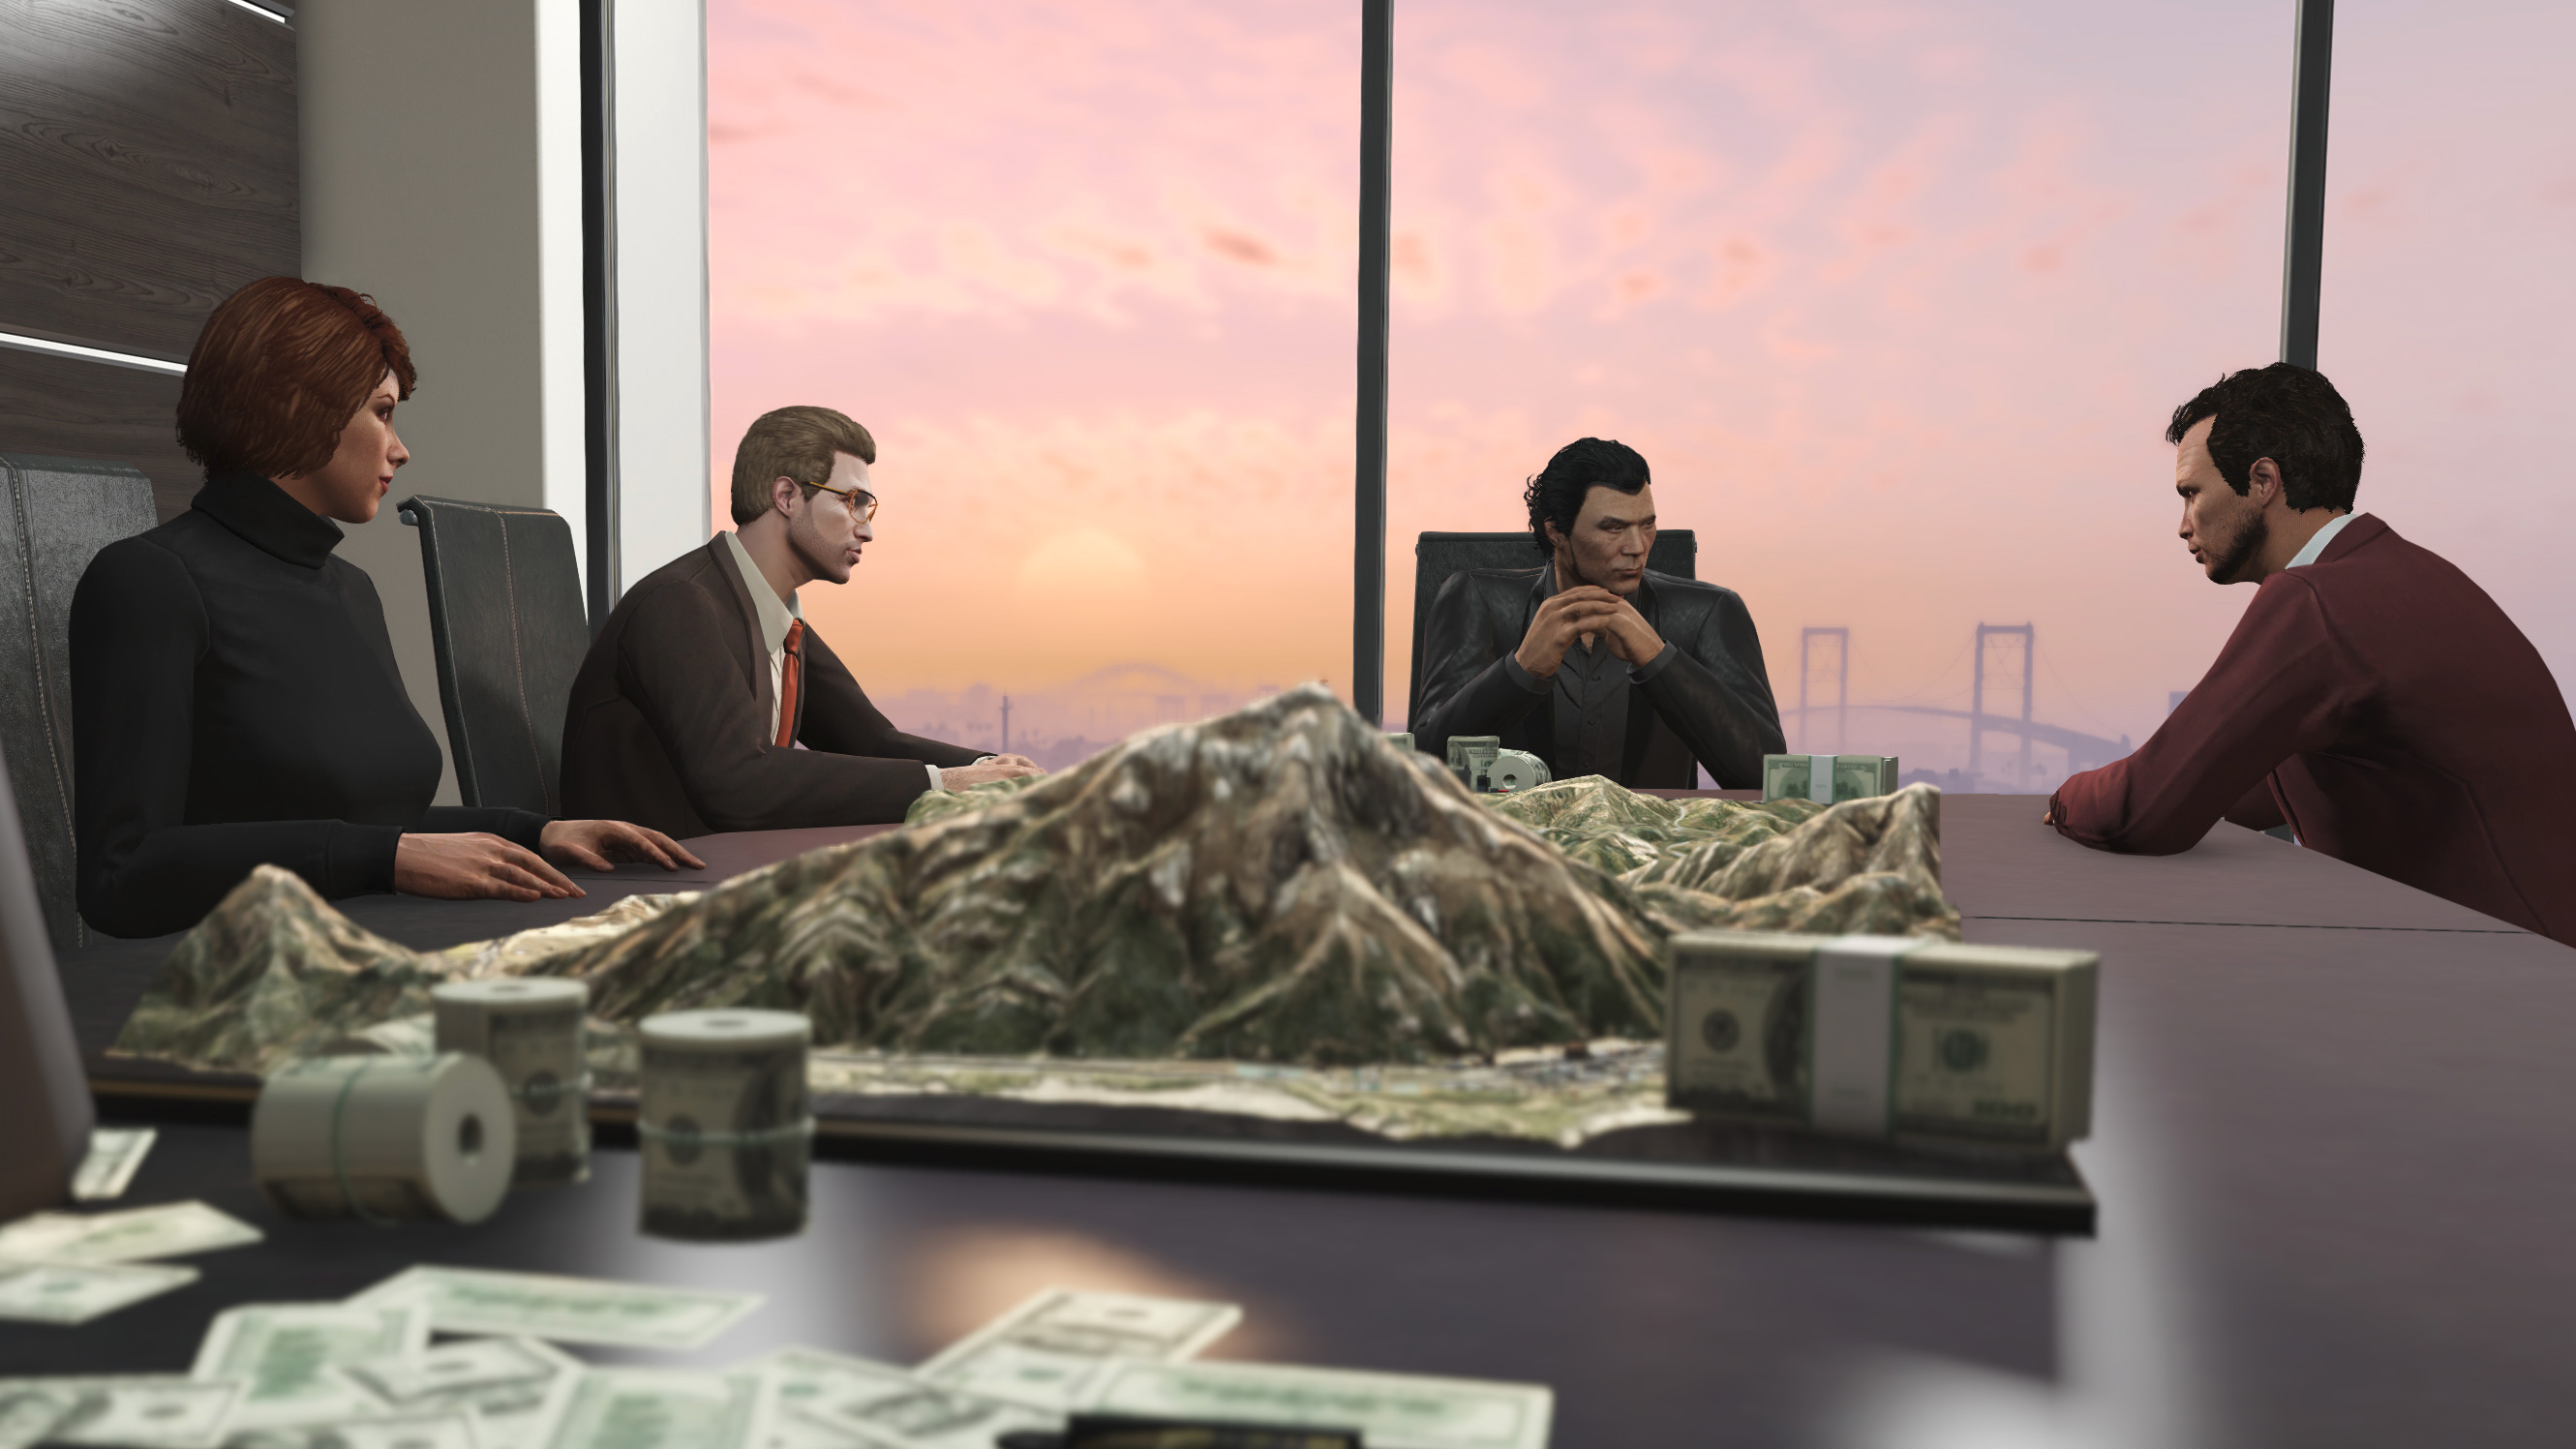 GTA Online cheating tools 'Force Hax' and 'Menyoo' shut down